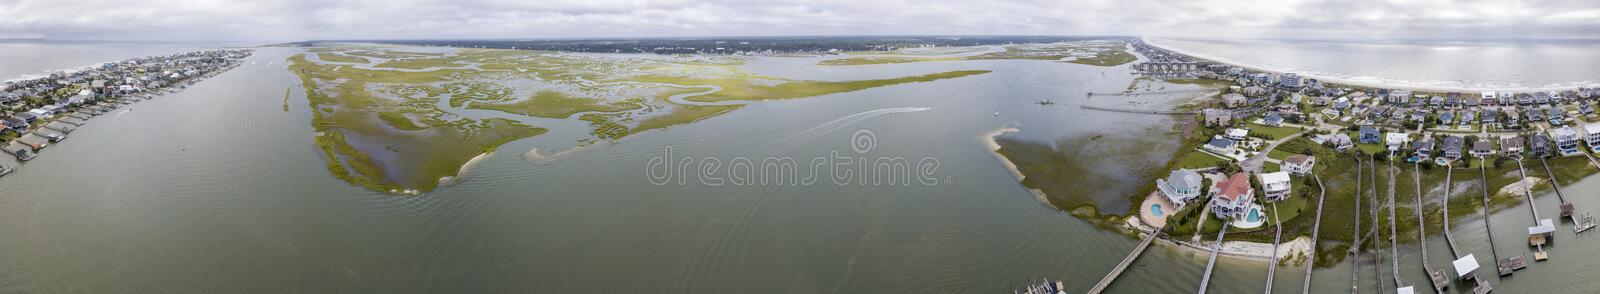 Aerial 360 degree panorama of Murrell Inlet and Surfside Beach in South Carolina along the Atlantic coast.  royalty free stock photos